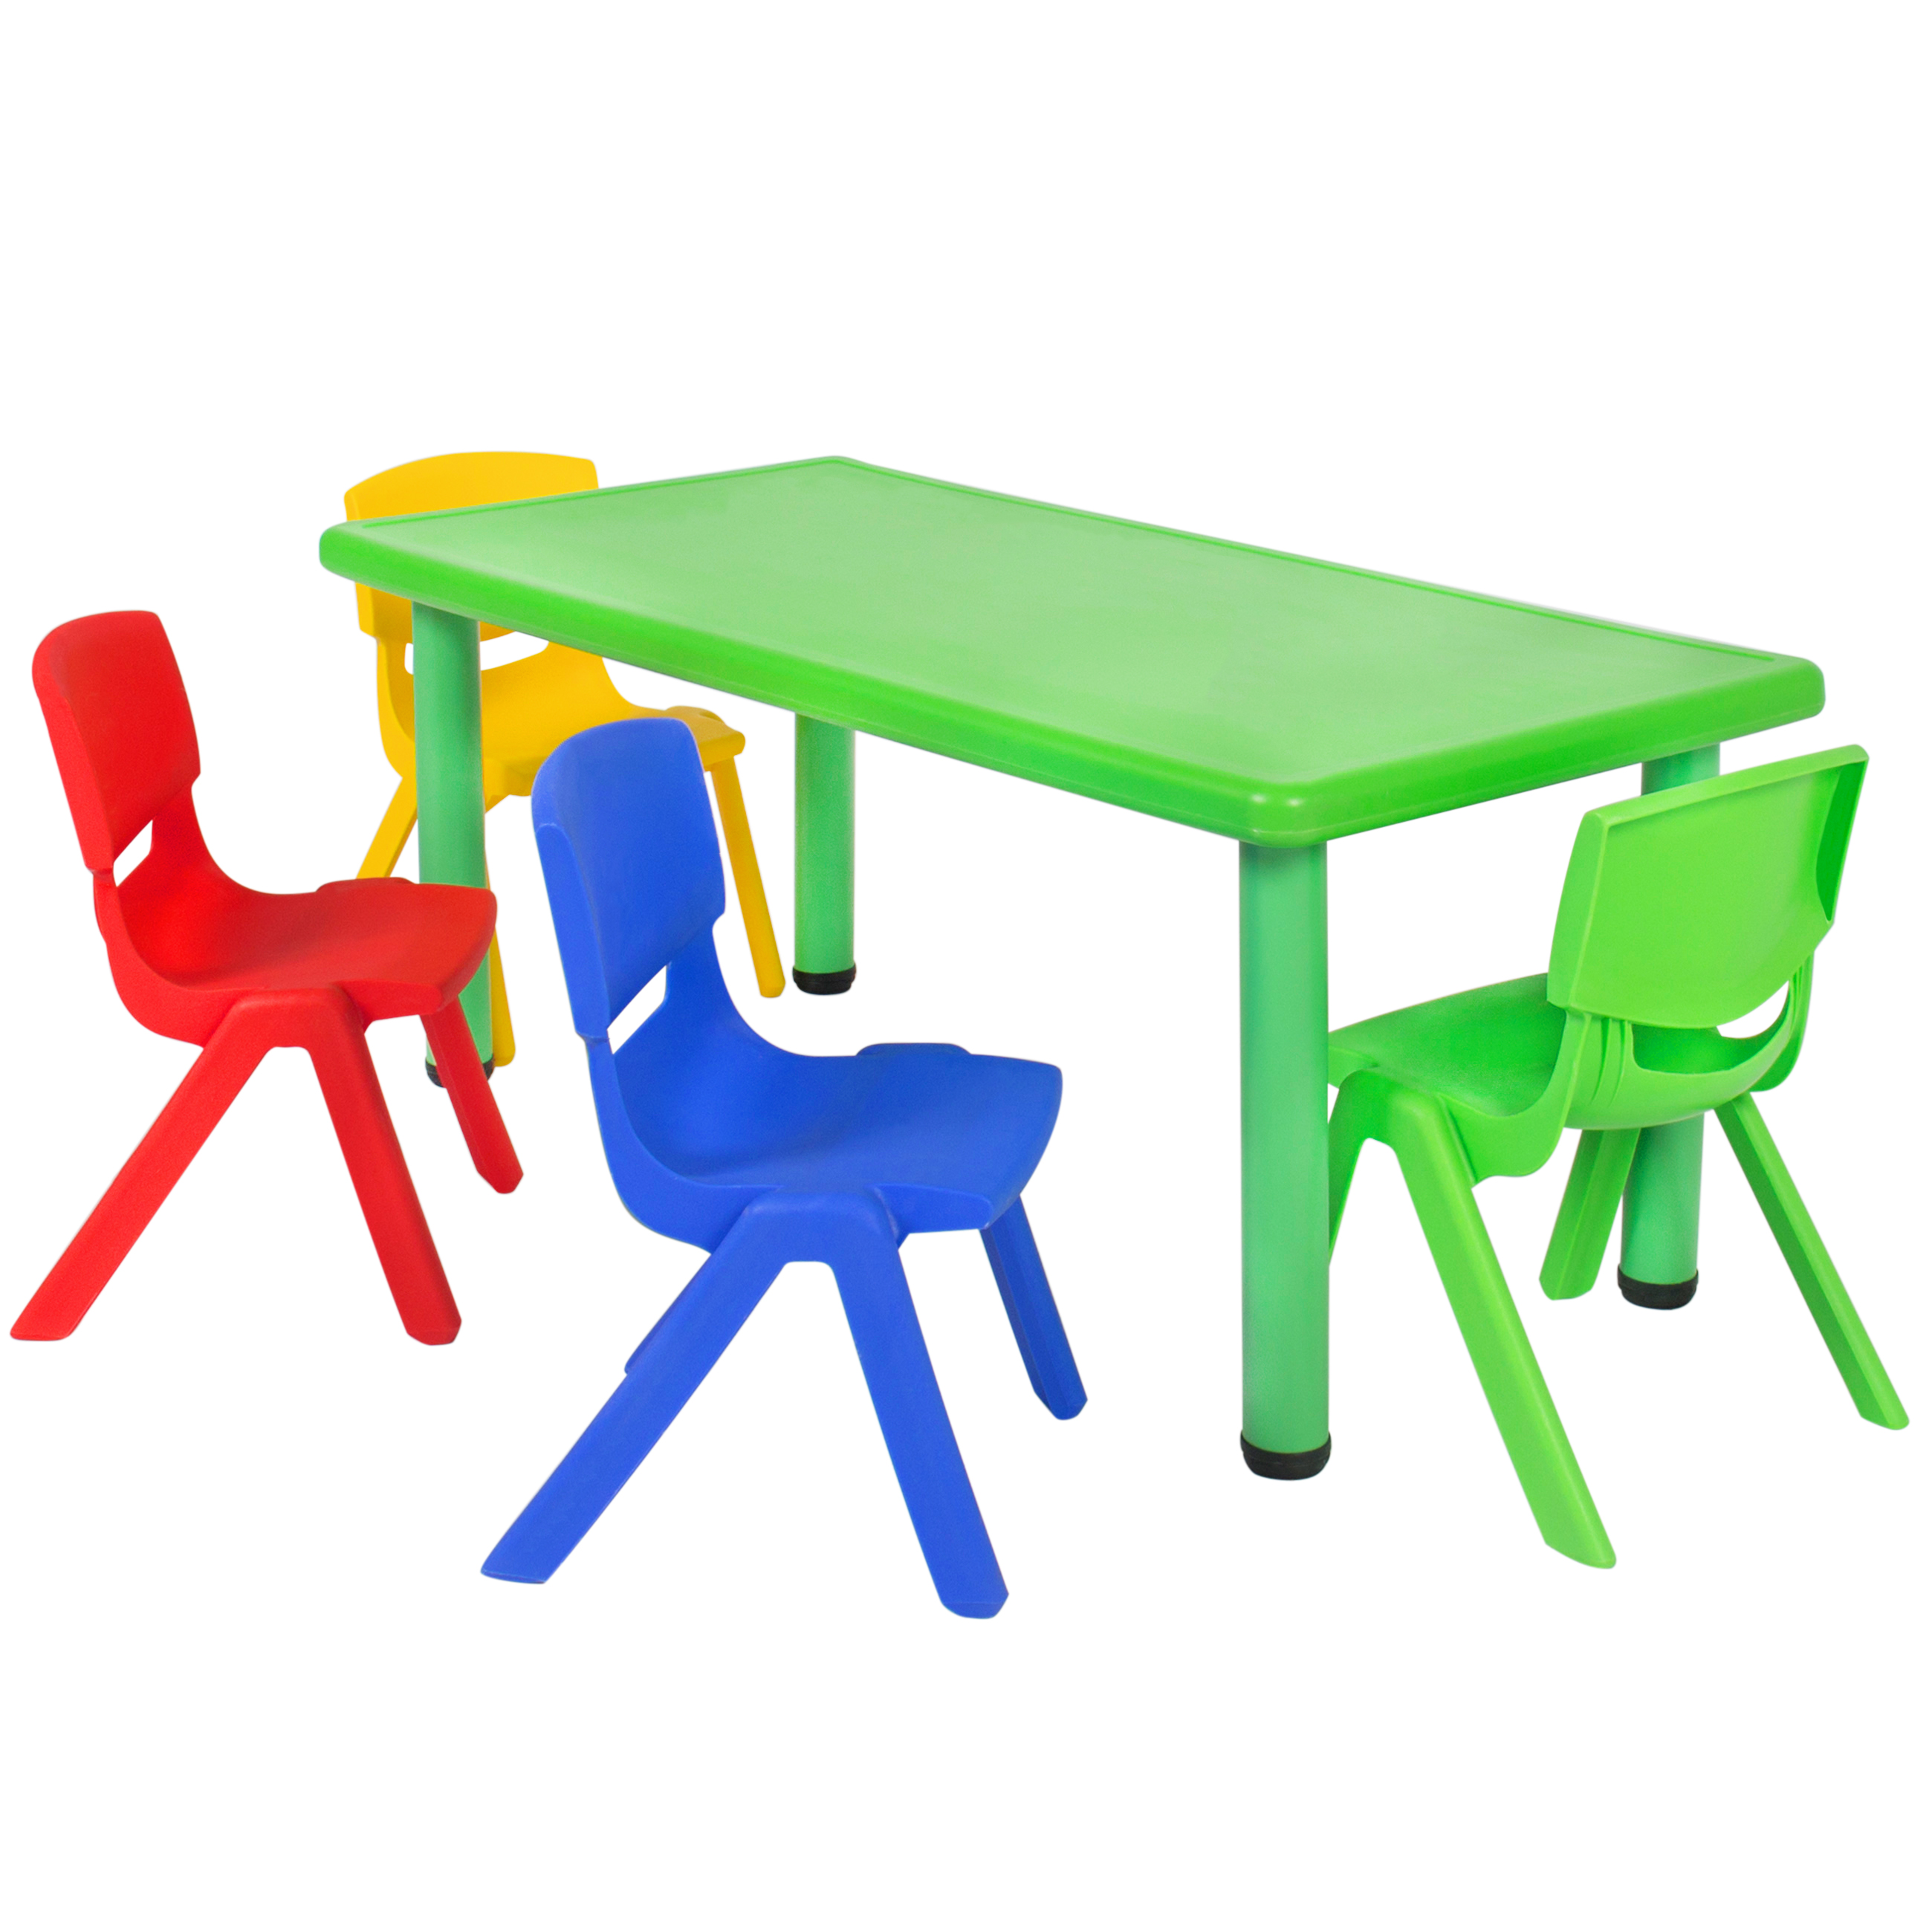 Best Choice Products Multicolored Kids Plastic Table And 4 Chairs Set Colorful Furniture Play Fun School  sc 1 st  Walmart & Best Choice Products Multicolored Kids Plastic Table And 4 Chairs ...